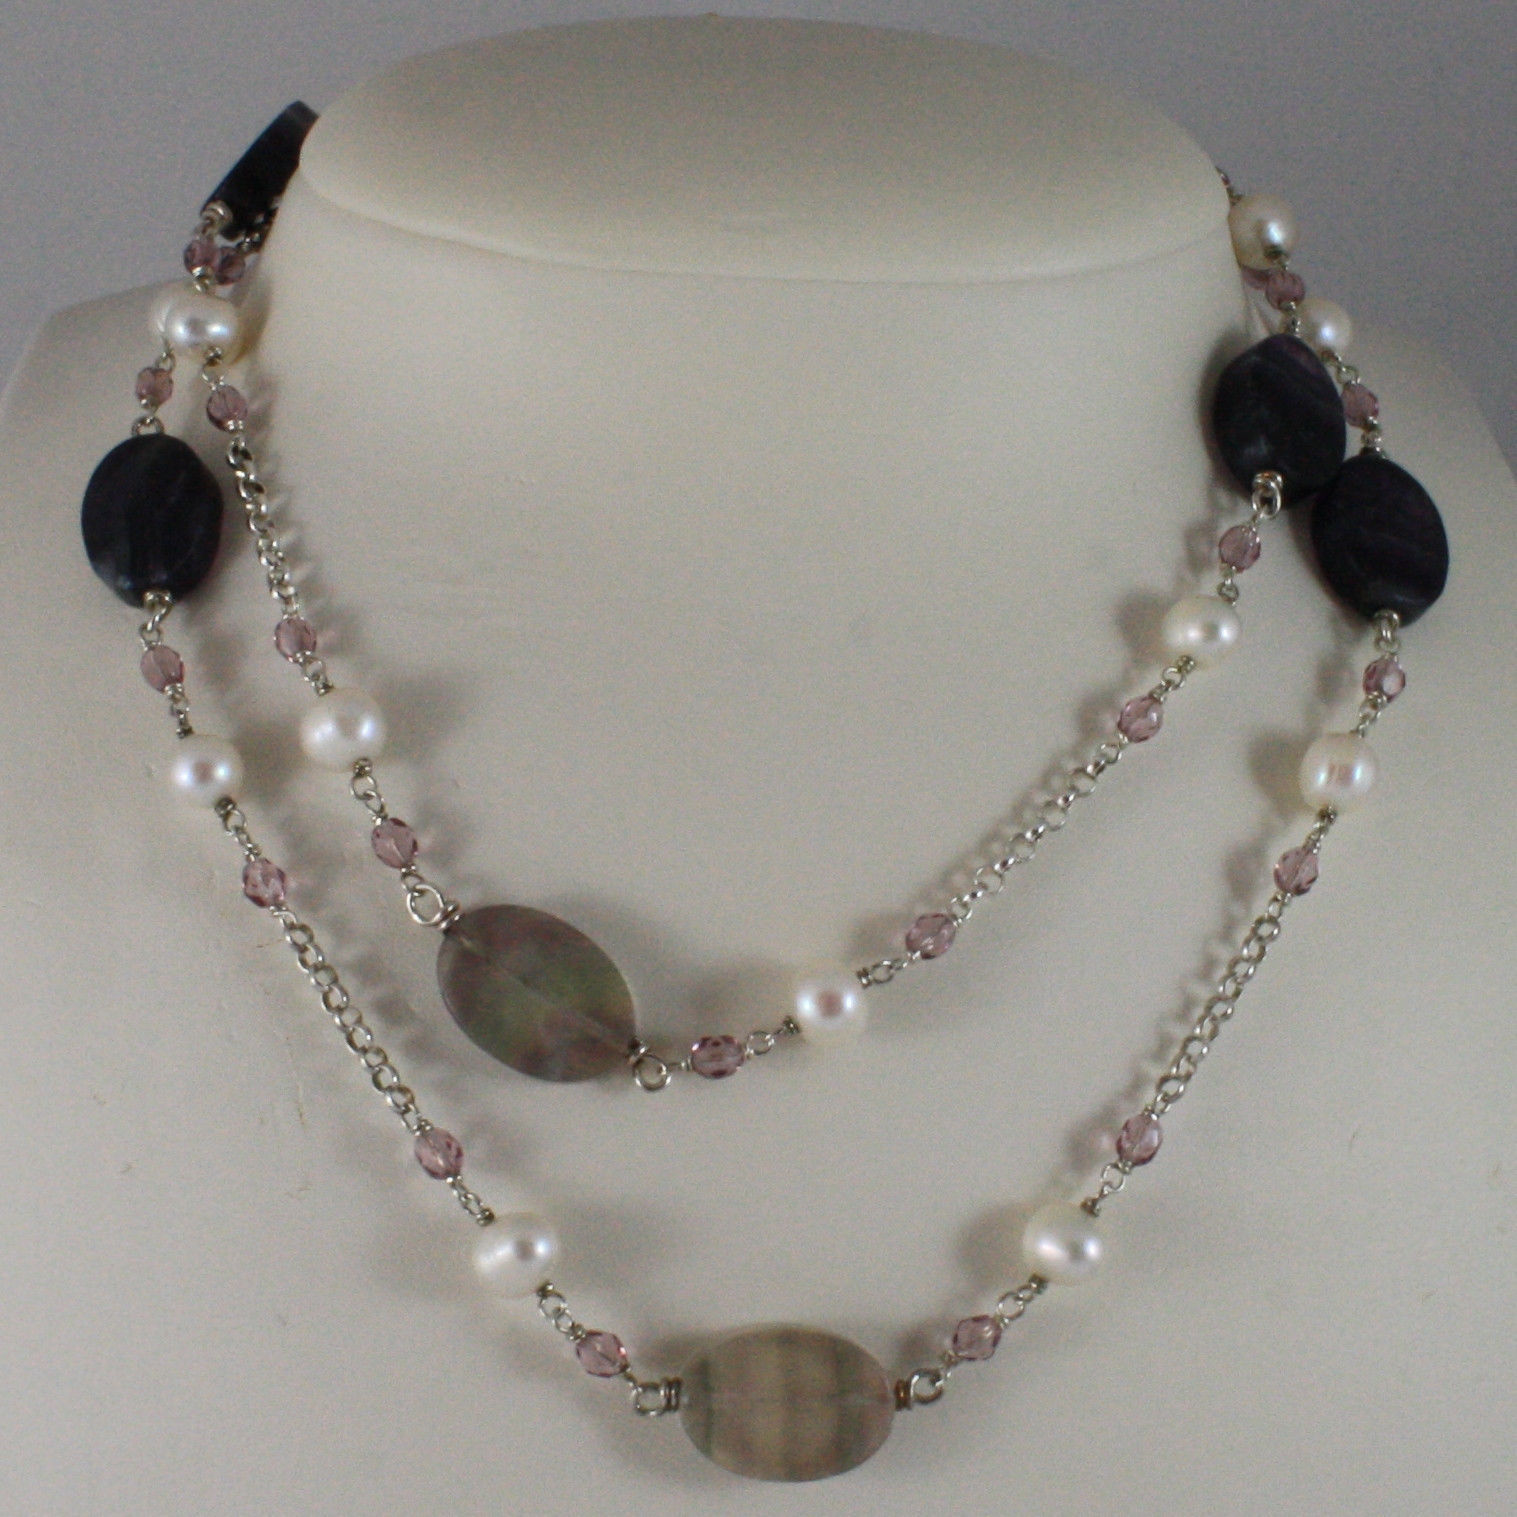 .925 SILVER RHODIUM NECKLACE WITH WHITE PEARLS, PINK CRYSTALS AND FLUORITE